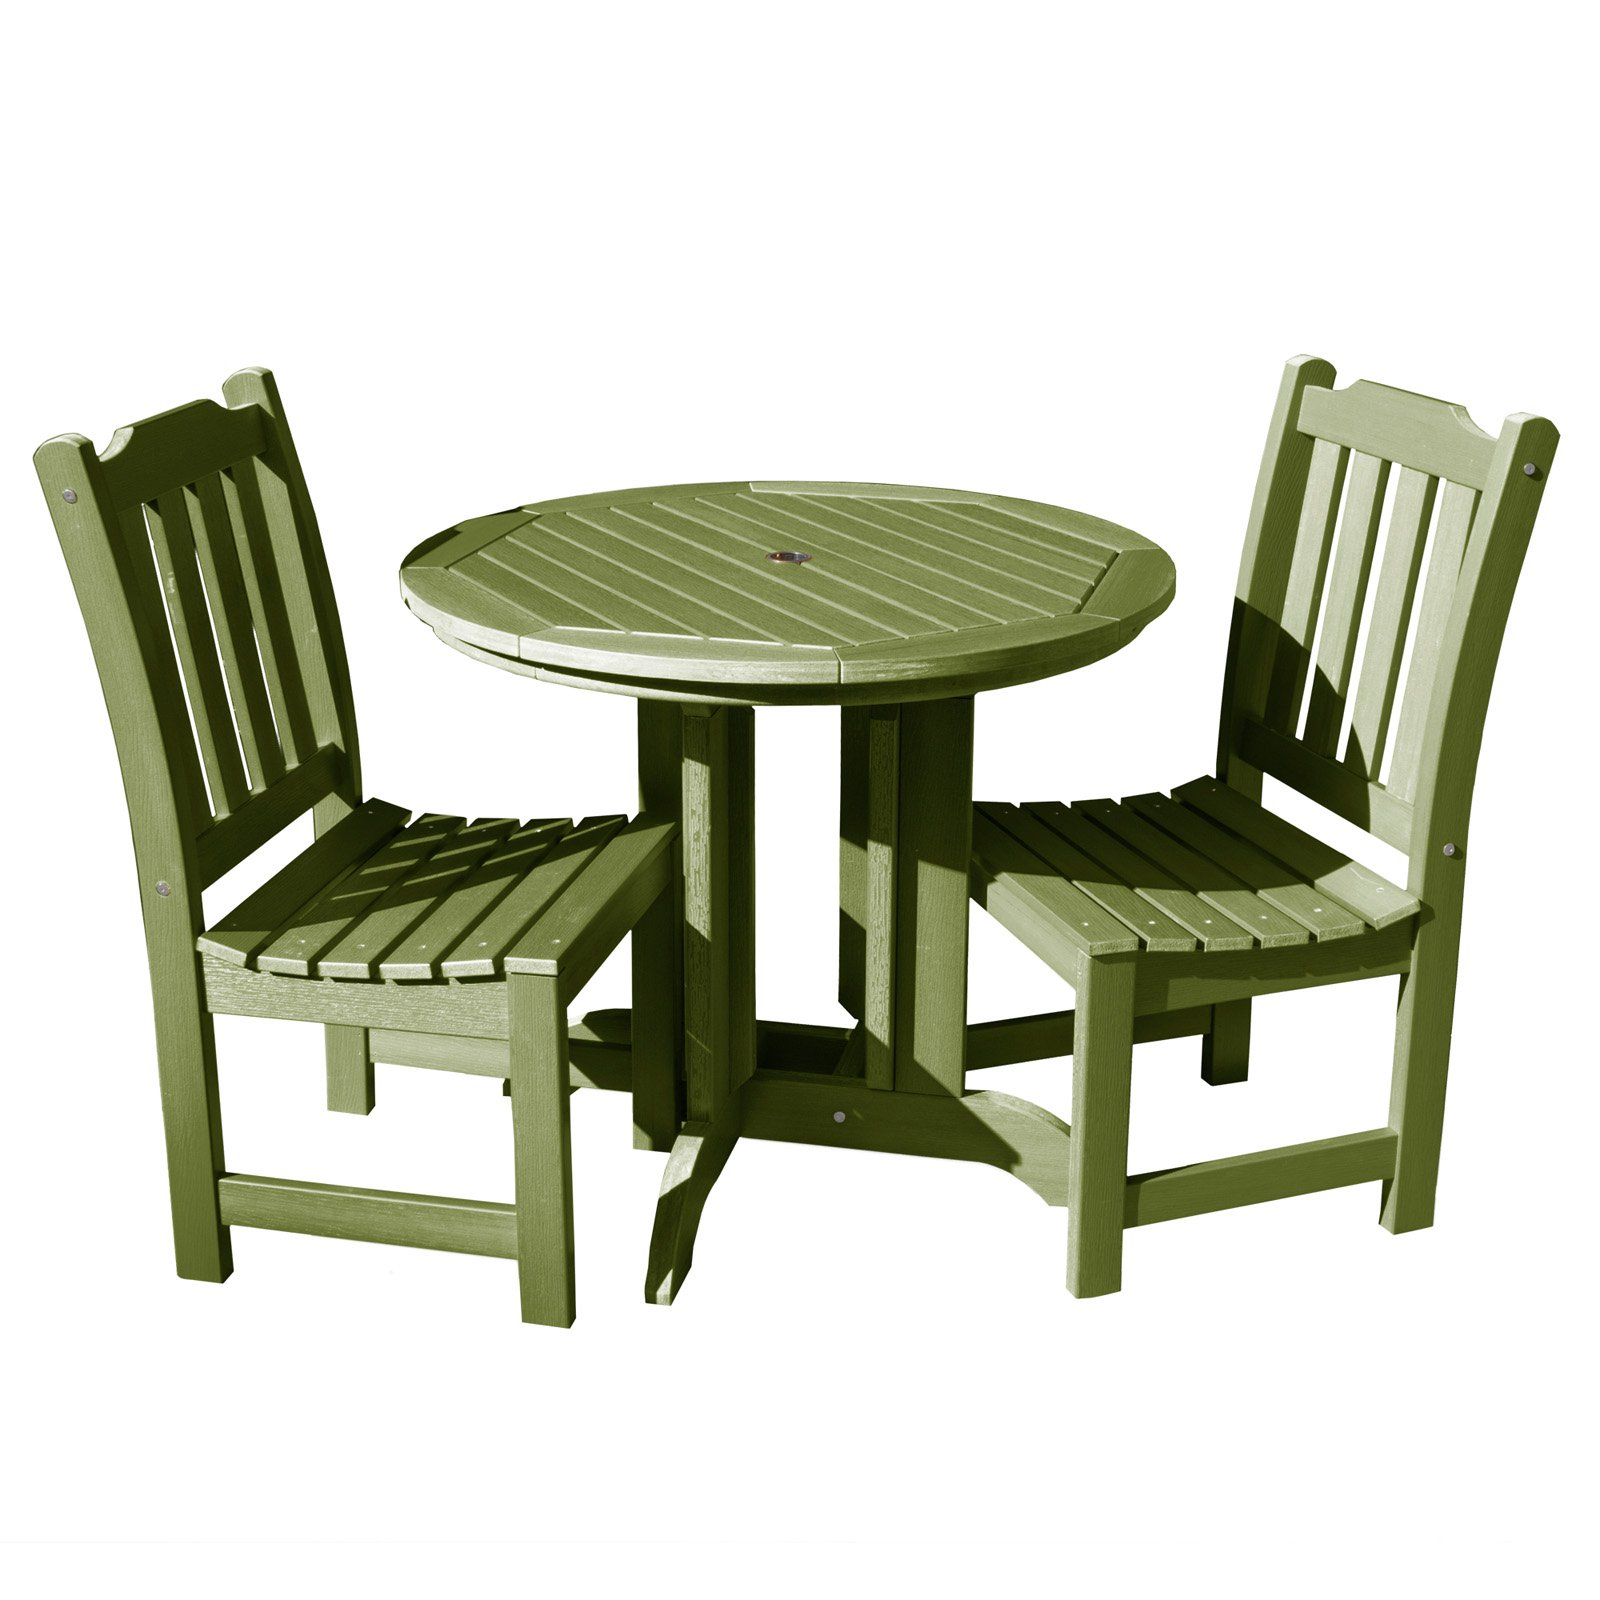 Well Known Saintcroix 3 Piece Dining Sets Regarding Outdoor Highwood Lehigh Recycled Plastic 3 Piece Round Patio Bistro (View 7 of 25)